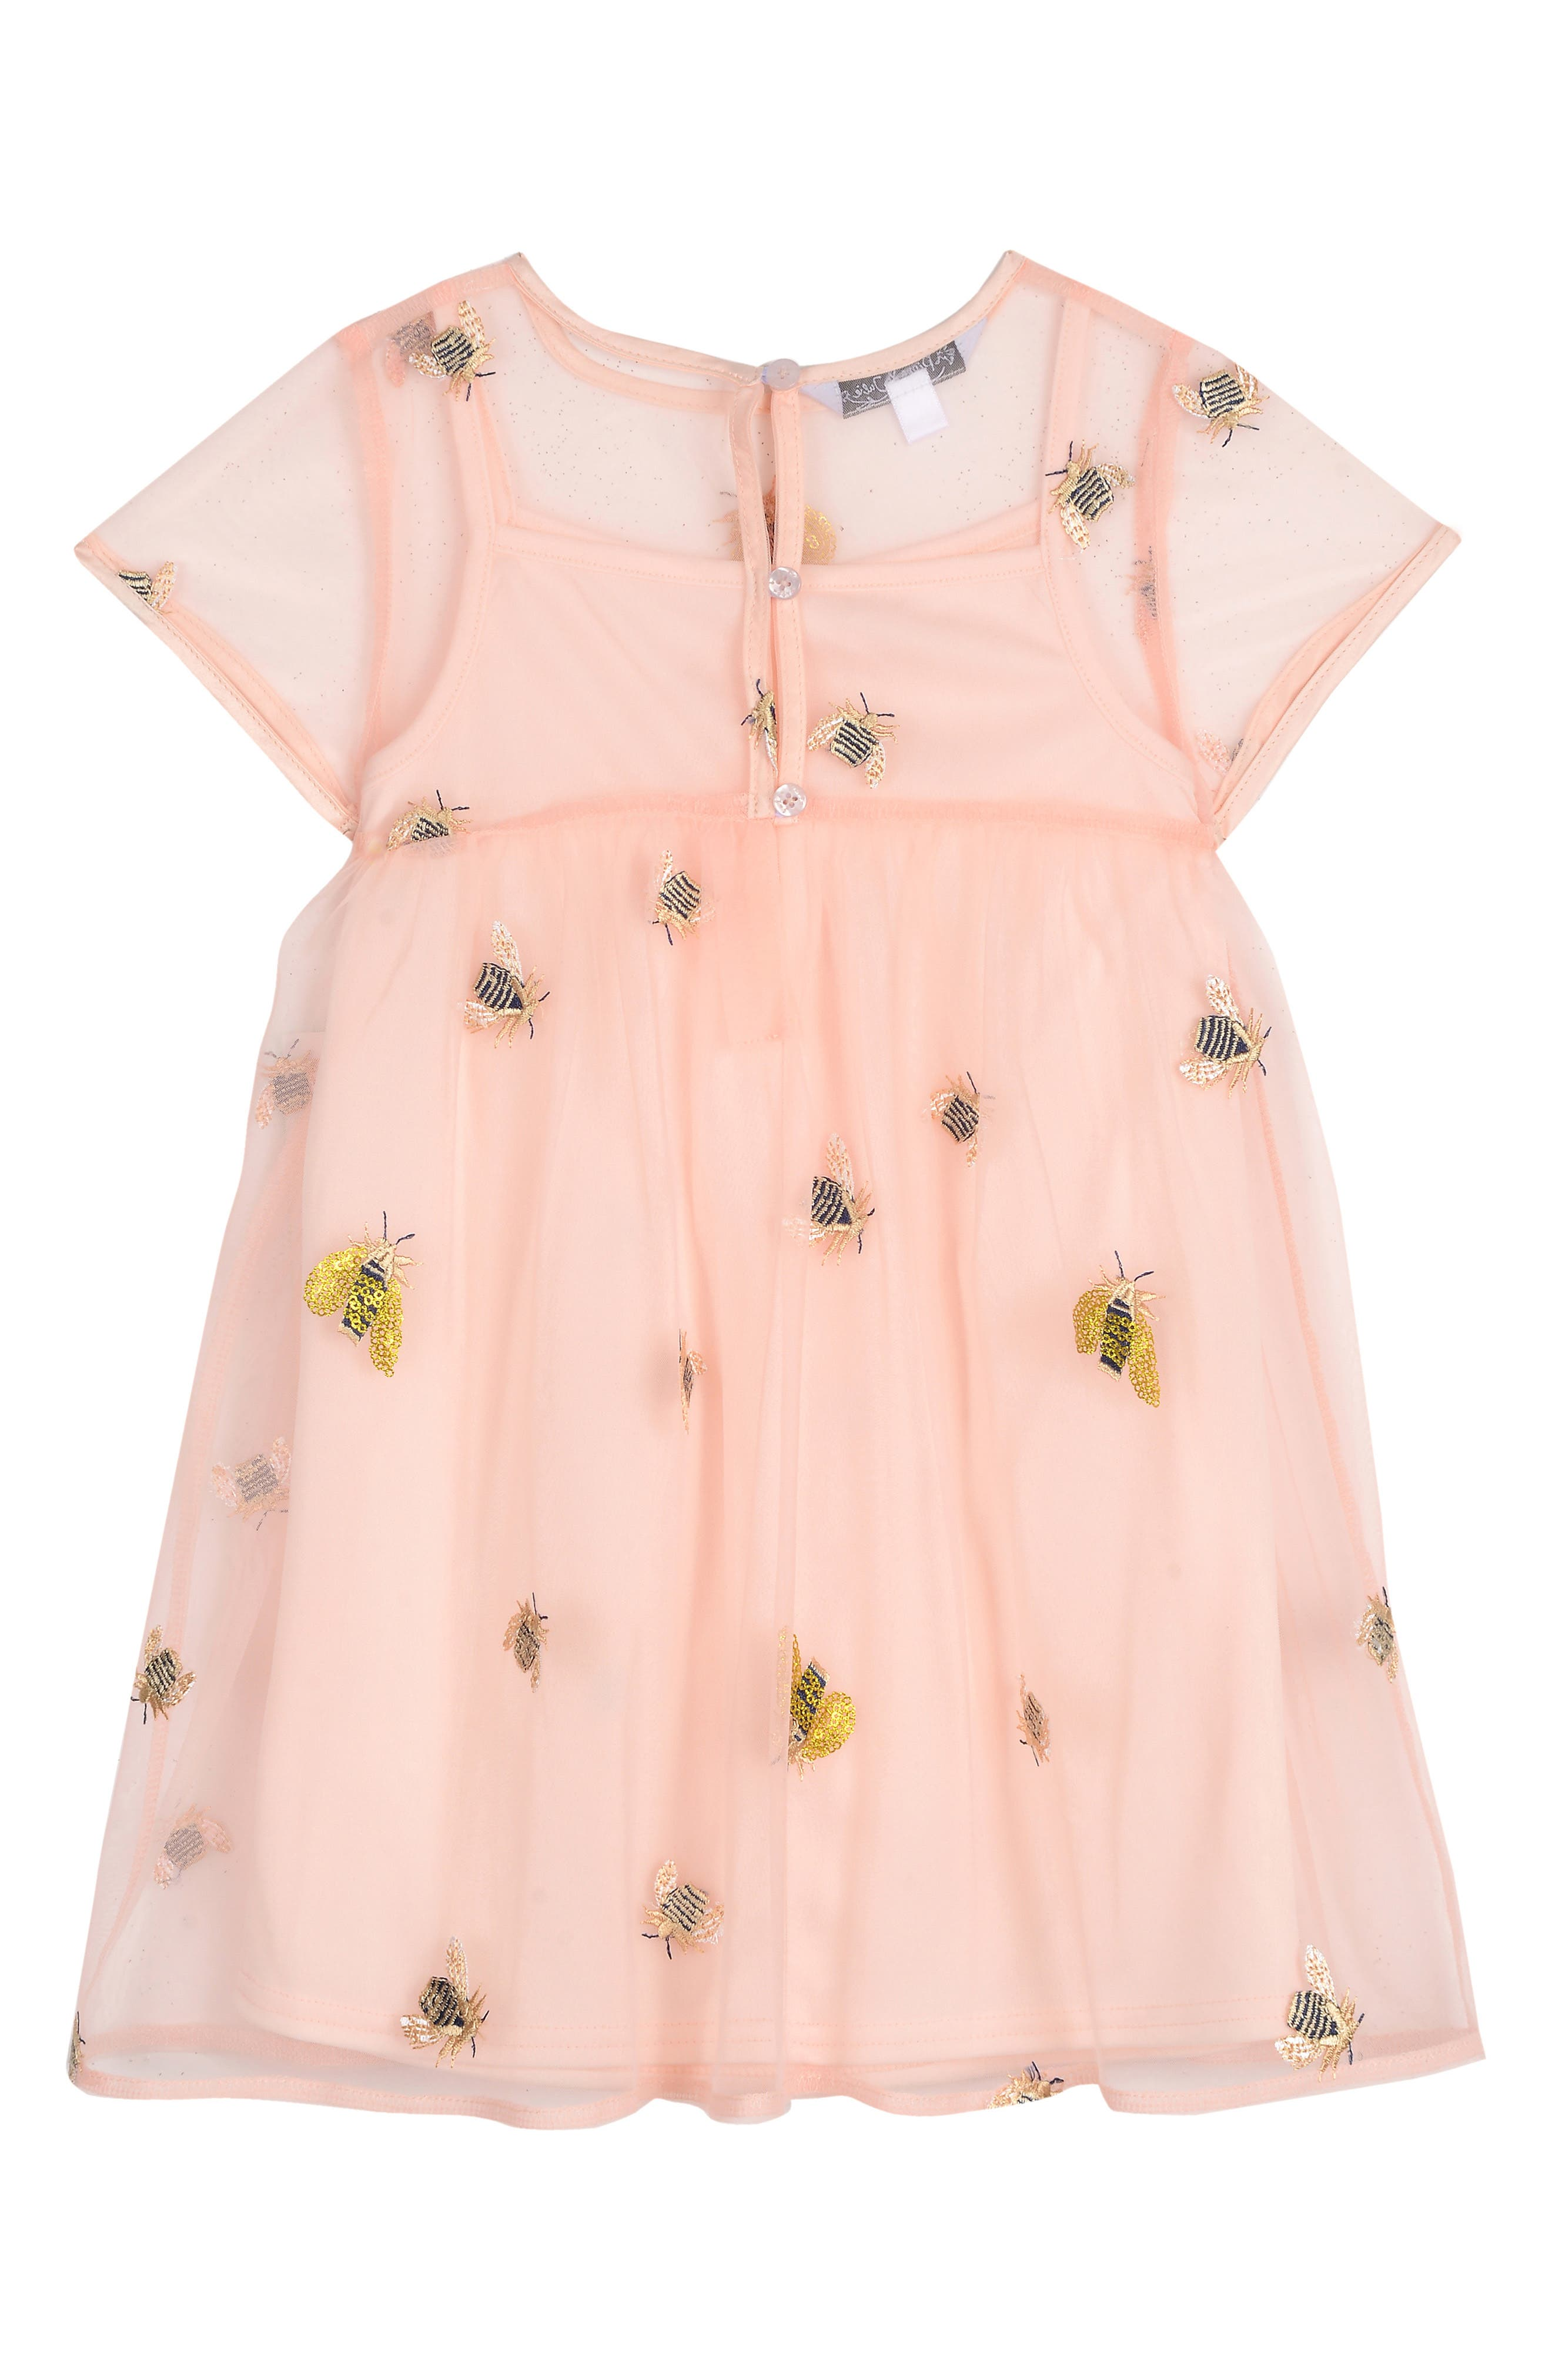 PIPPA & JULIE, Embroidered Bee Dress, Alternate thumbnail 2, color, PINK UNDERLAY